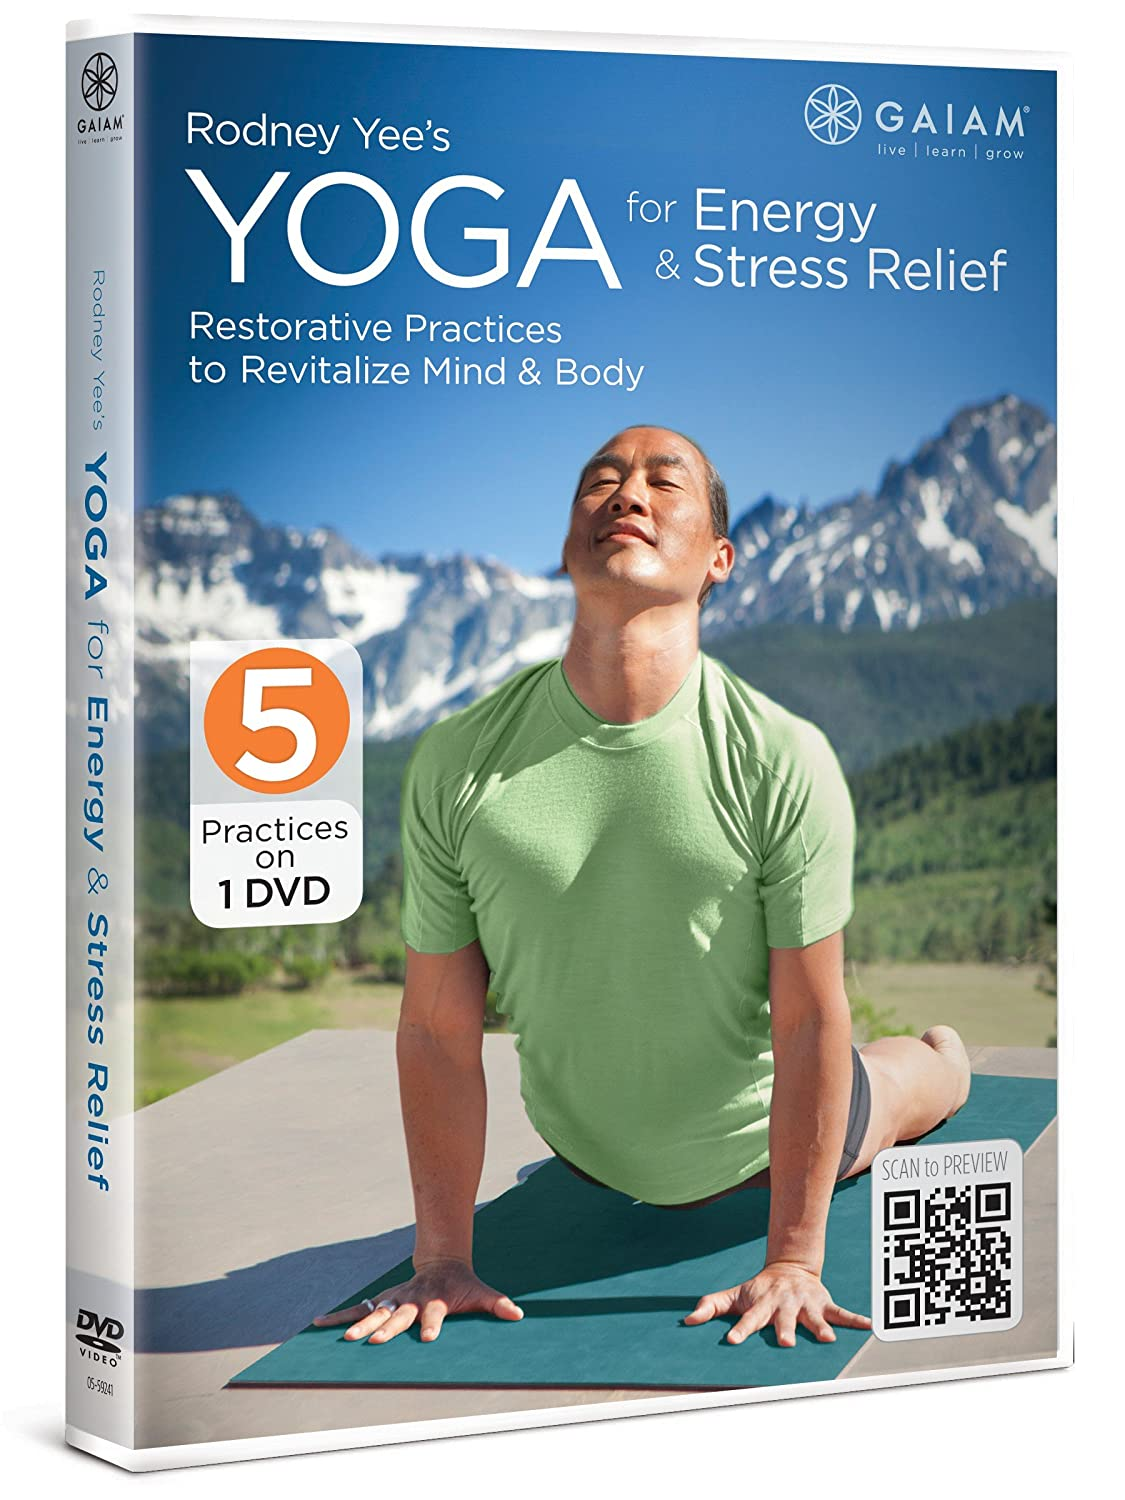 Rodney Yee's Max 71% Free Shipping Cheap Bargain Gift OFF Yoga for Relief Stress Energy